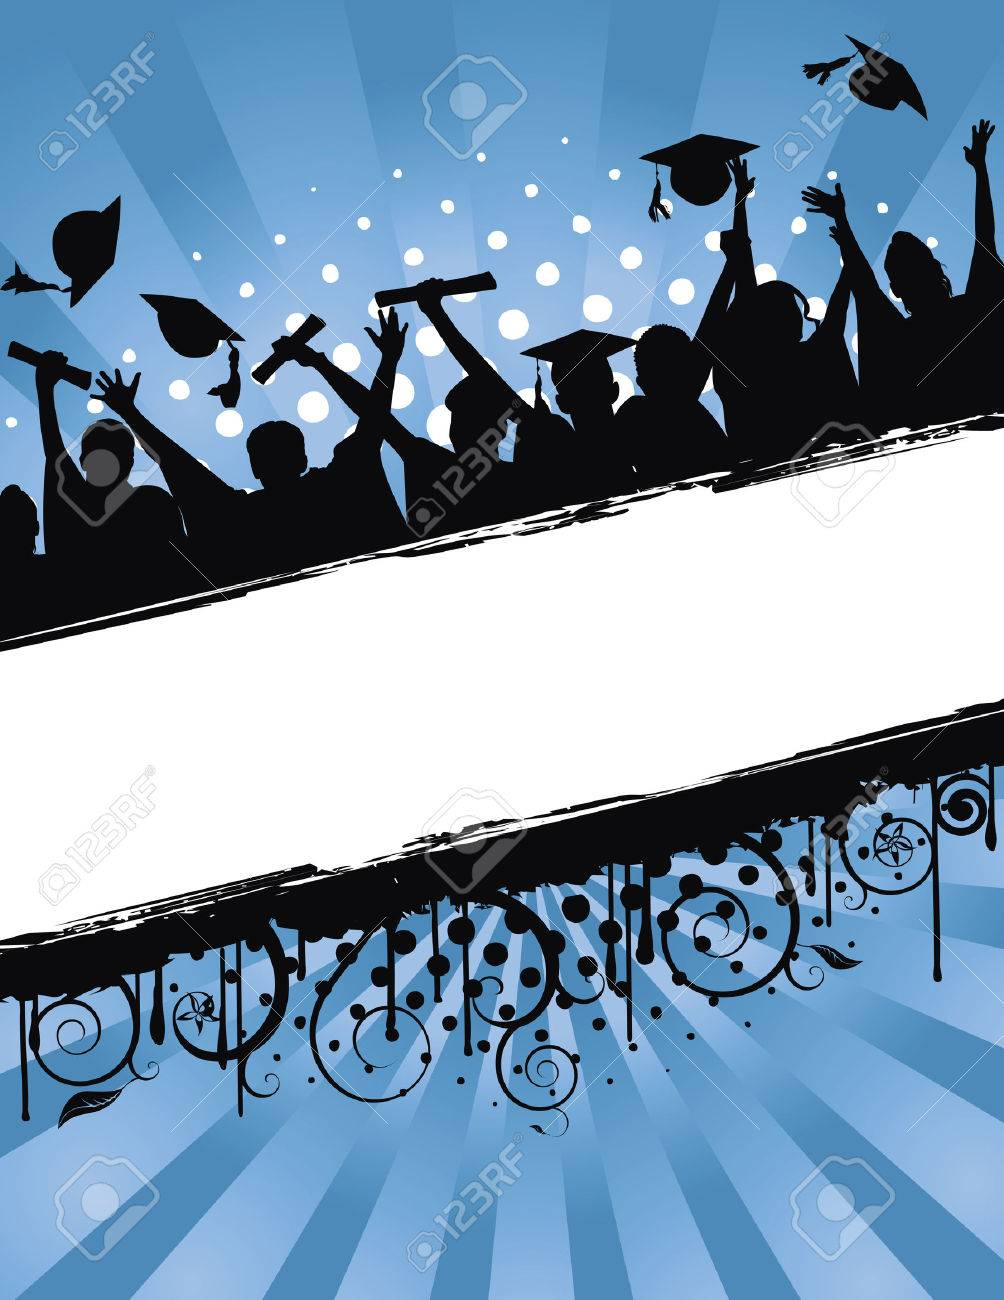 Grunge background  illustration of a group of graduates tossing their caps in celebration of graduation Stock Vector - 6649438